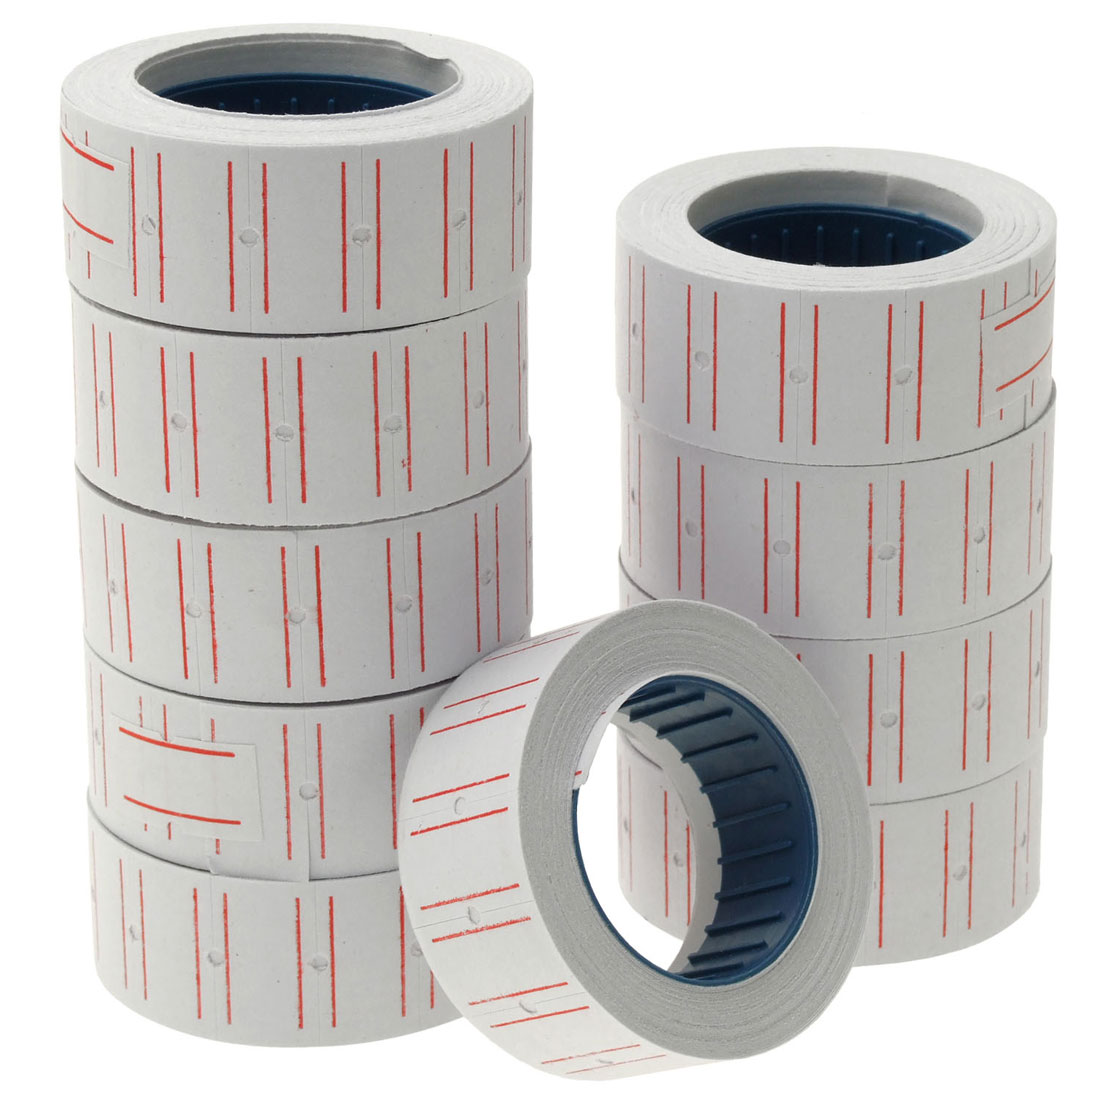 10pcs Self Adhesive Labels Roll Retail Store Price Stickers 21mm x 12mm